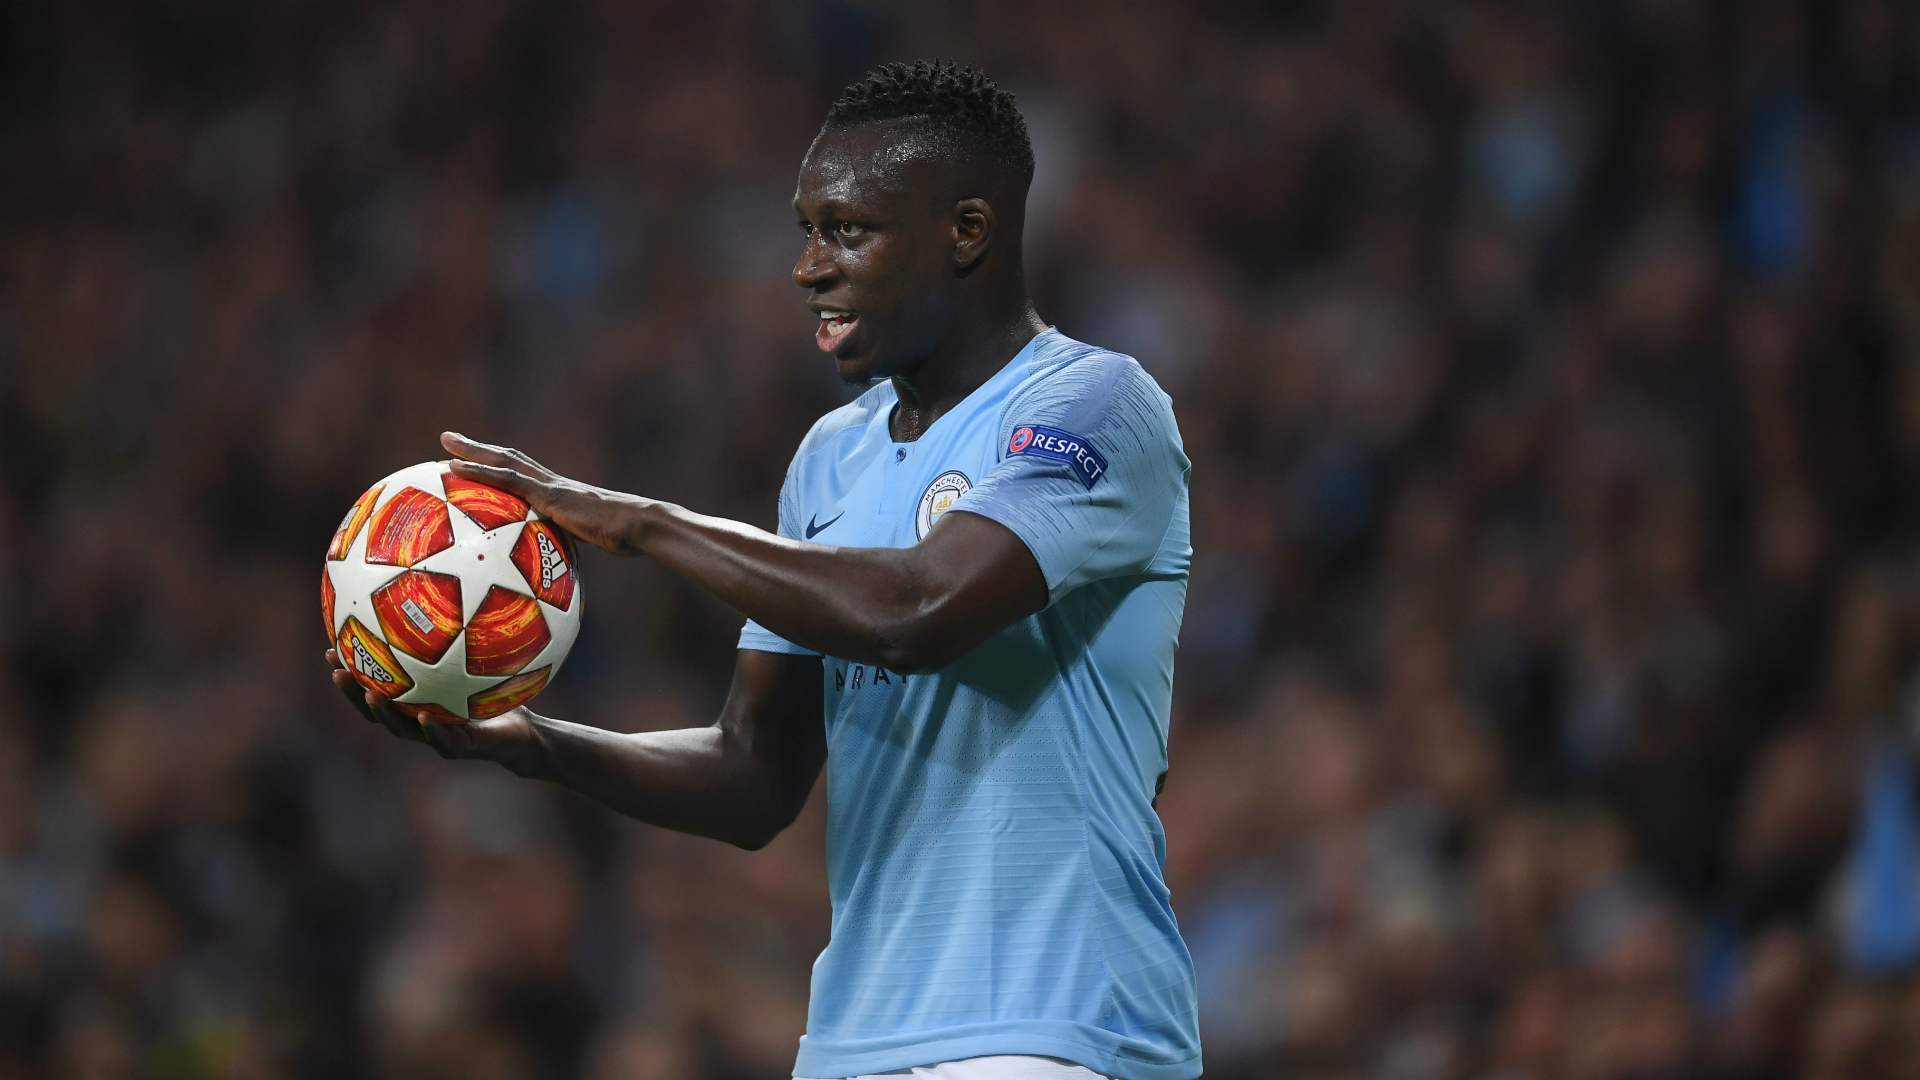 Gundogan hails Mendy's return from injury as 'a big boost' for Manchester City